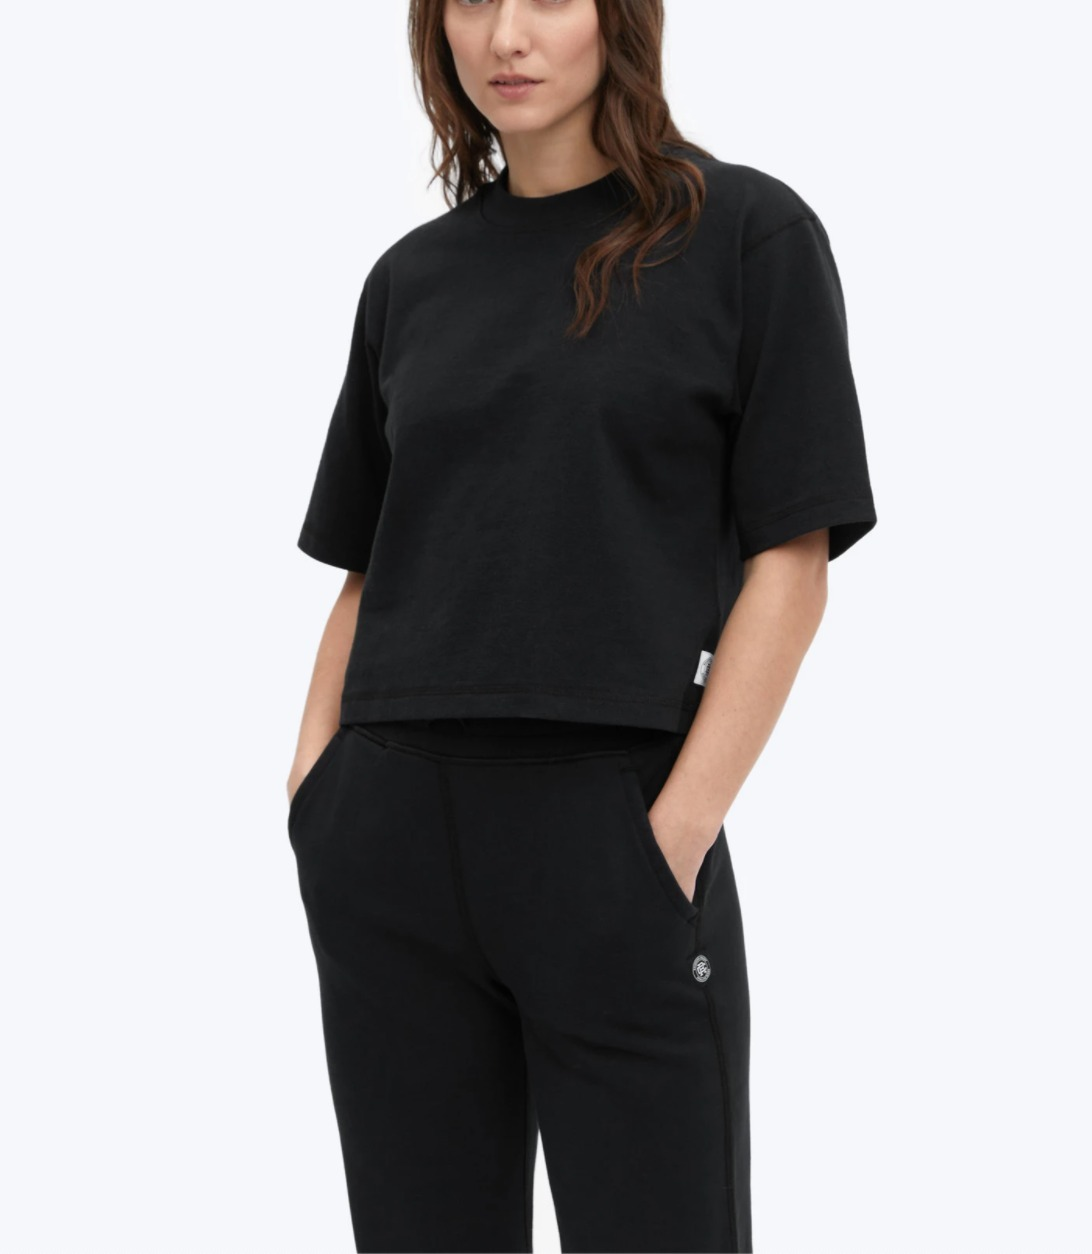 shop reigning champ clothing